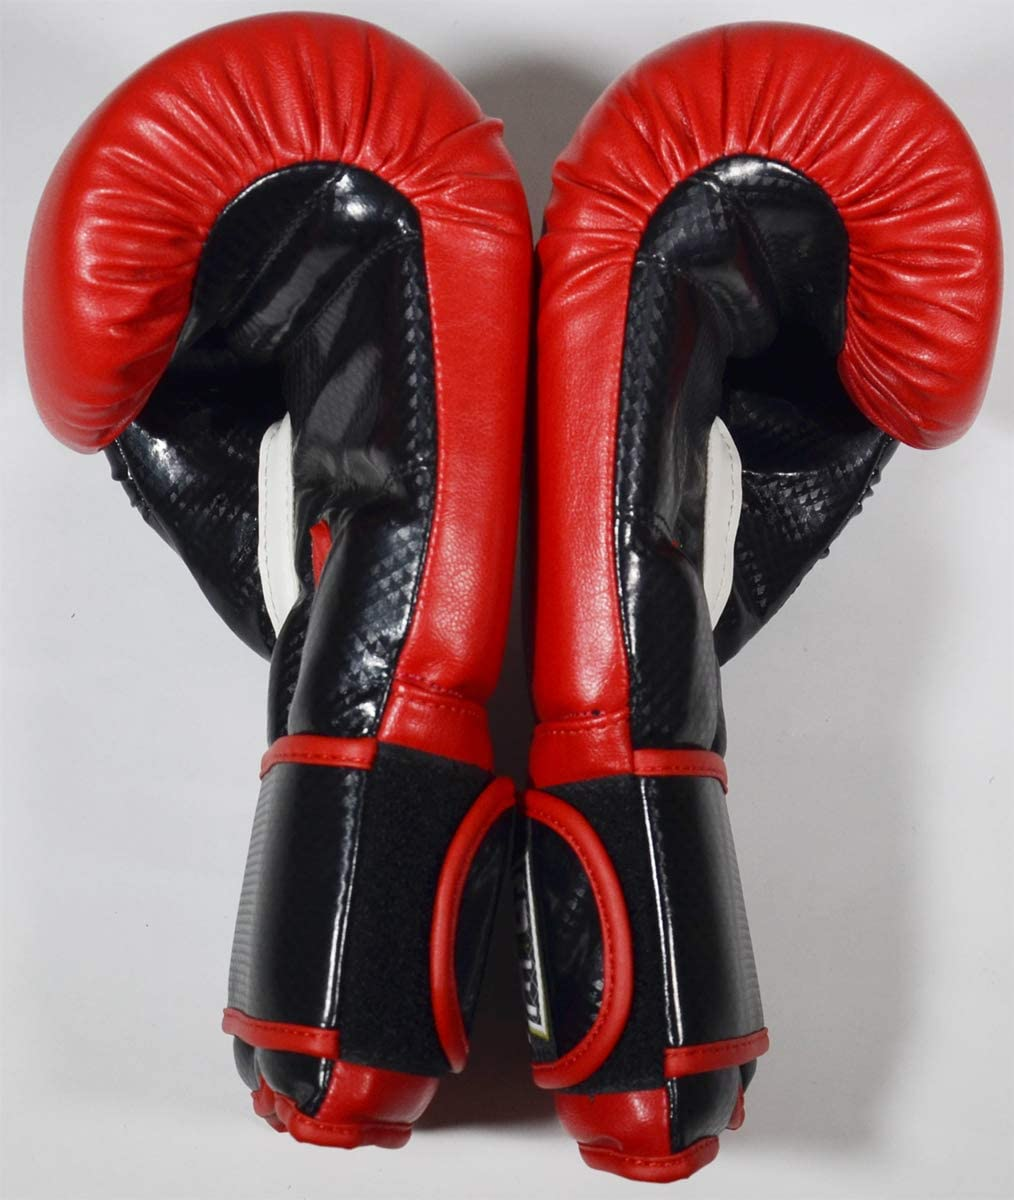 Boxing Kickboxing MMA Ring to Cage Gym Training Boxing Gloves for Muay Thai